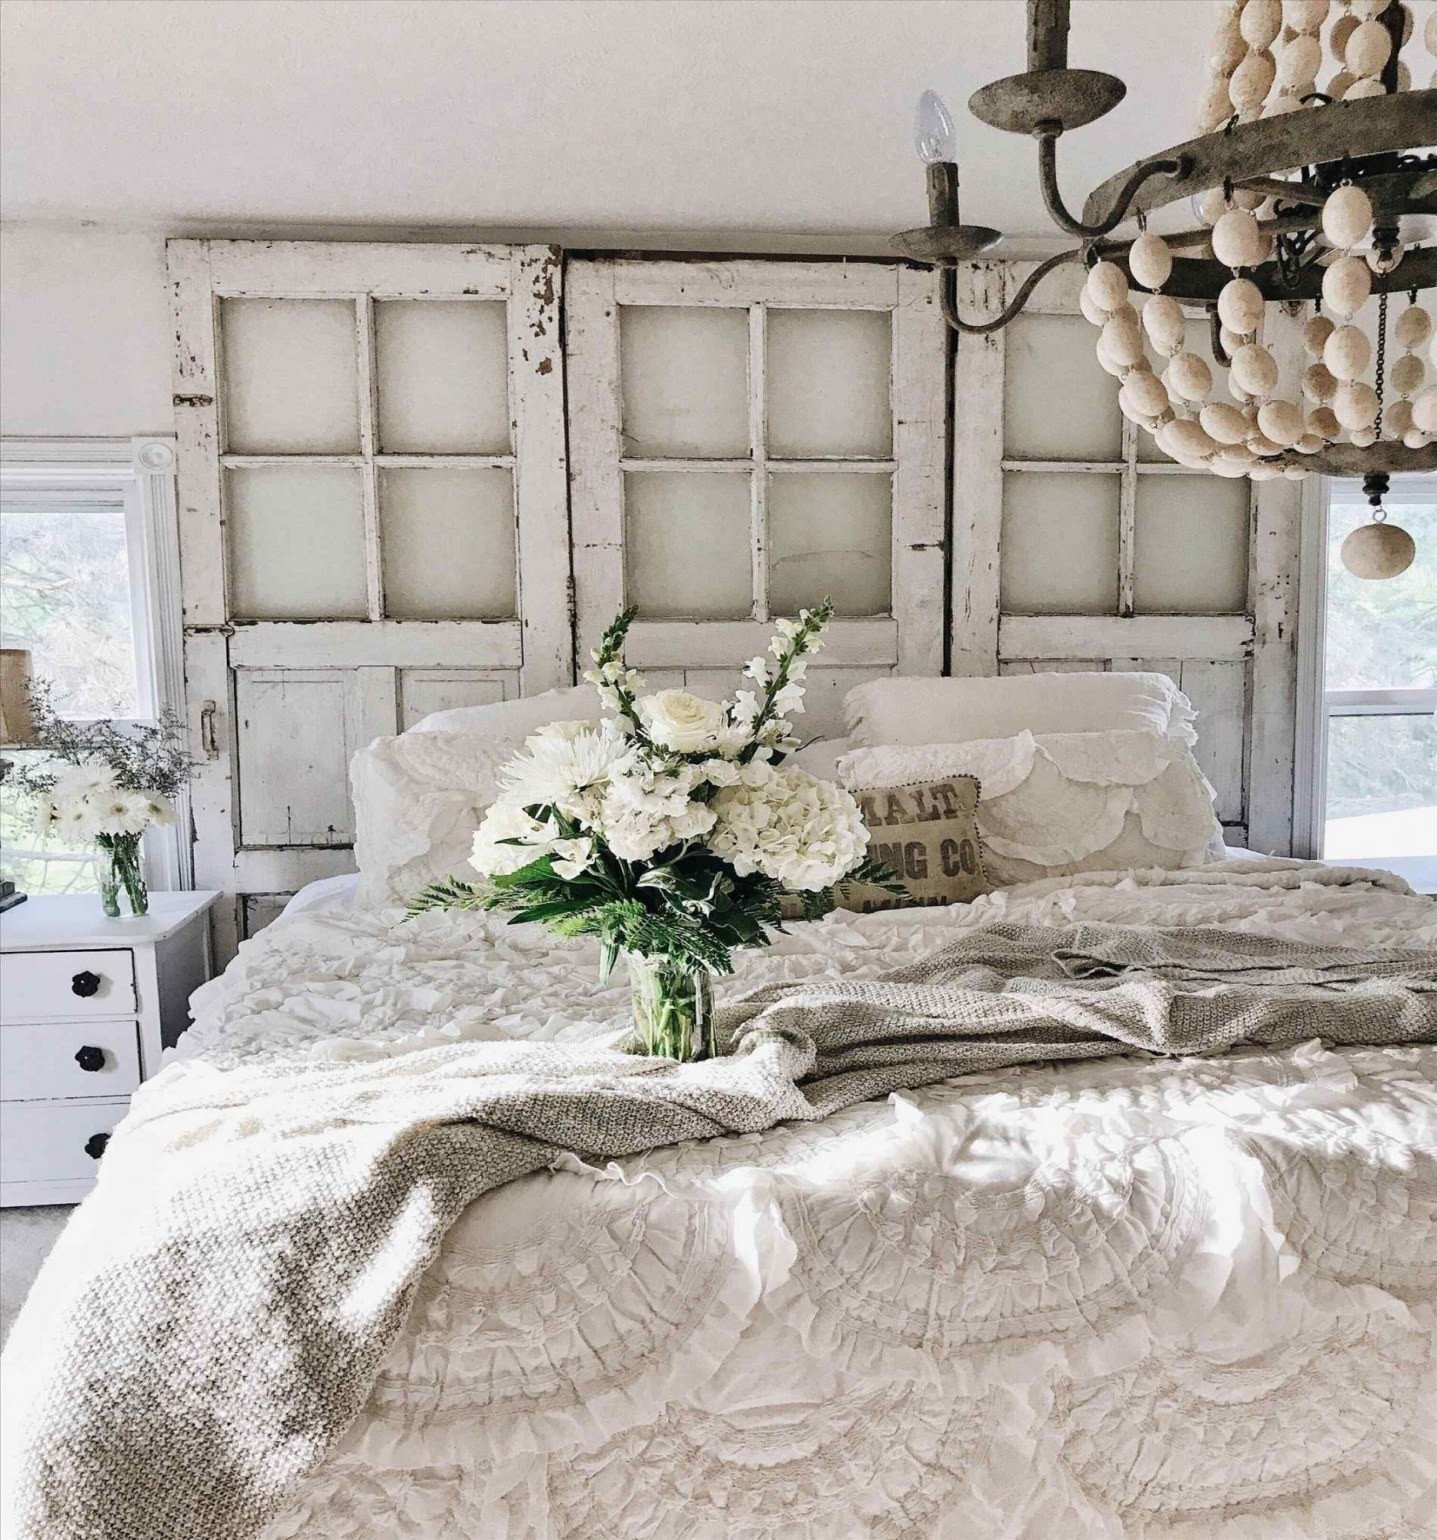 Shabby Chic Bedroom Decor Beautiful Living Room Wallpaper Ideas Shabby Chic Bedroom Decor Lovely